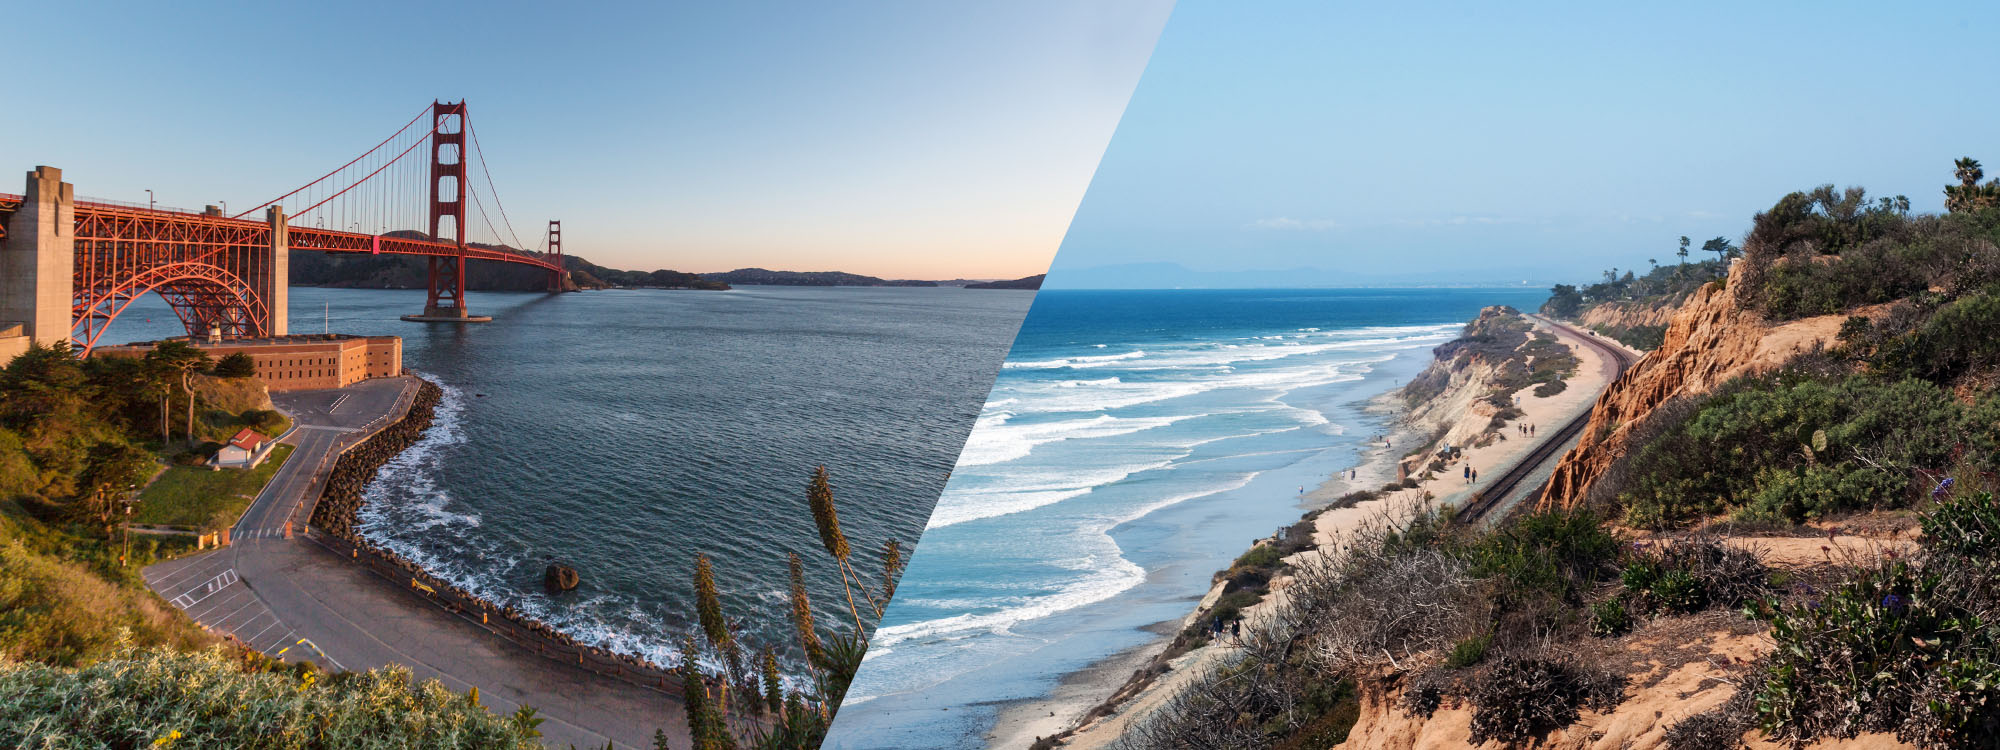 NorCal vs. SoCal: Which is right for you?